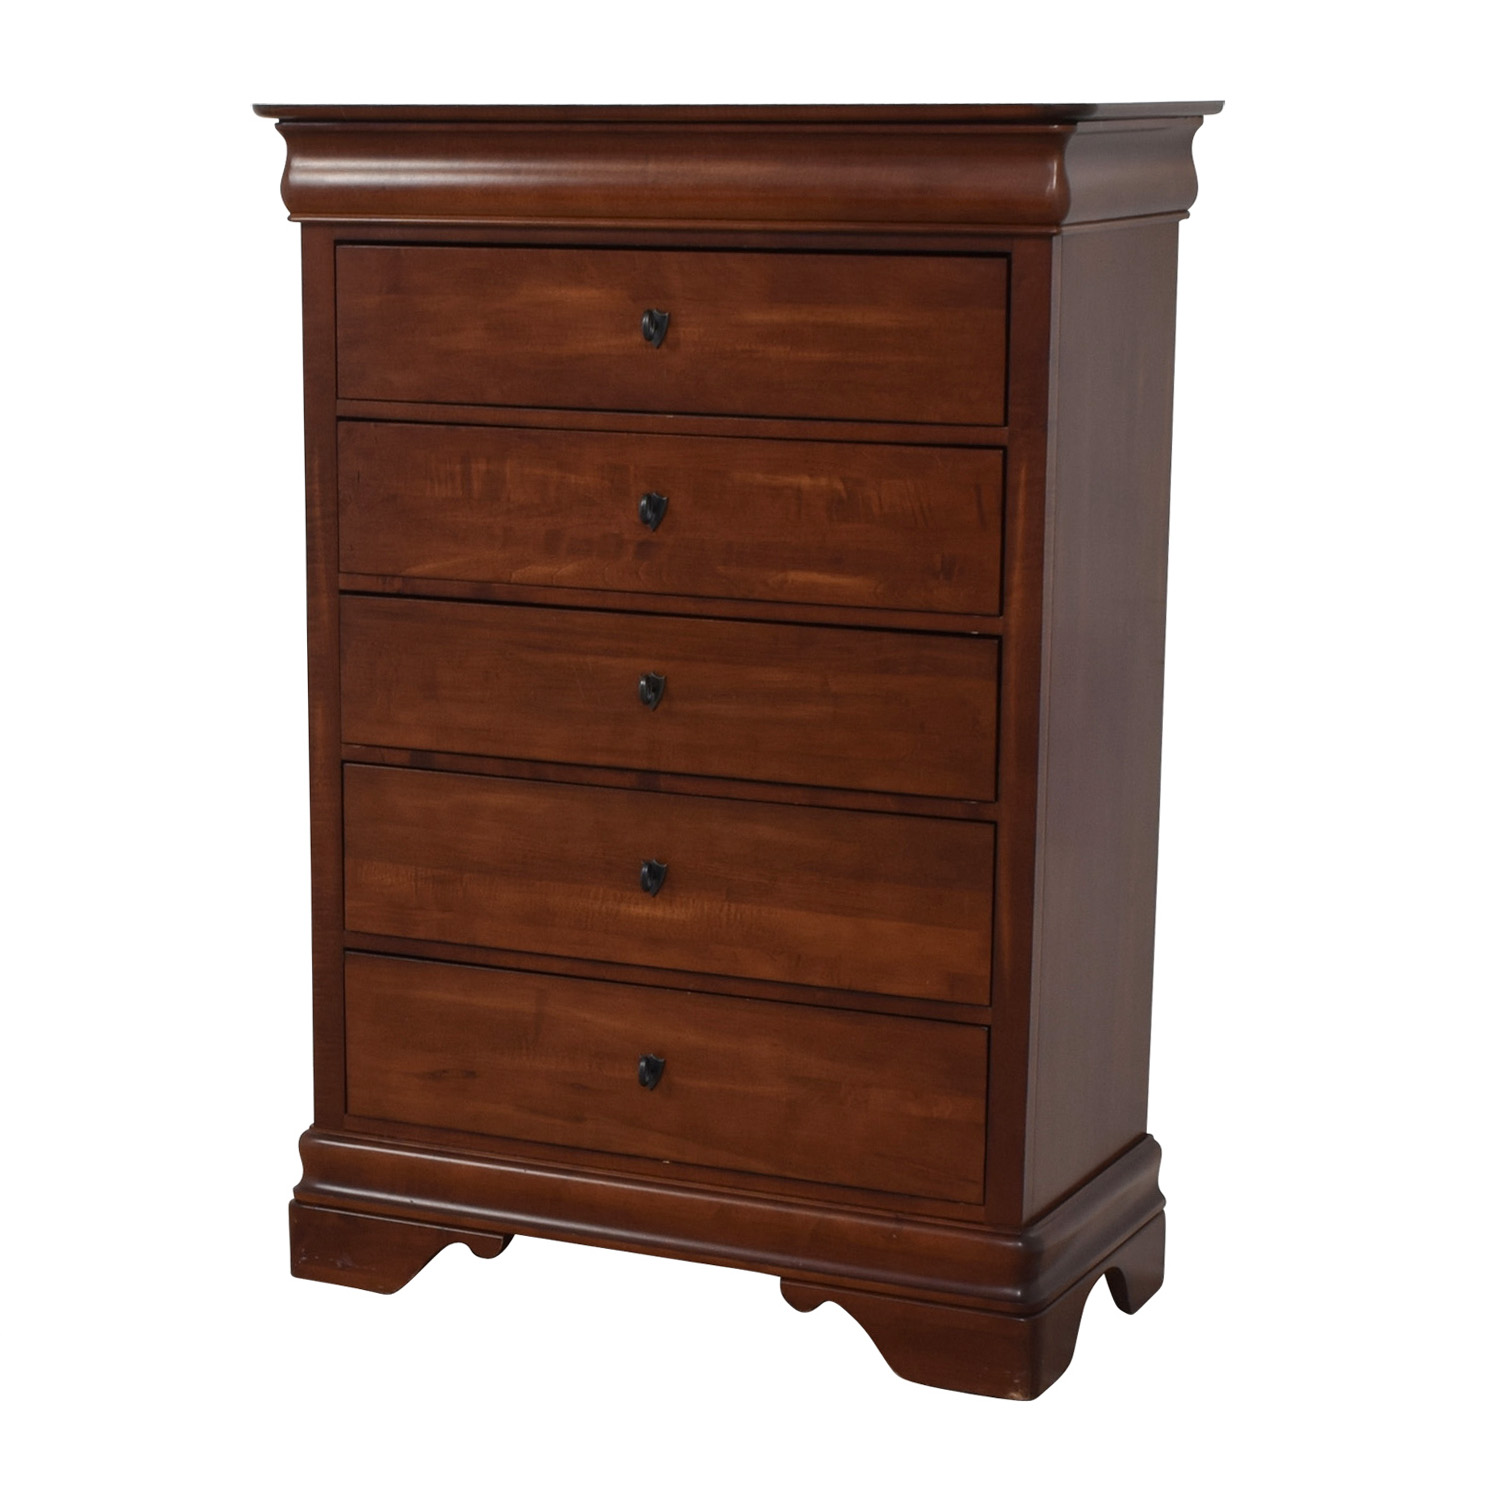 Kincaid Kincaid Wood Six-Drawer Chest of Drawers nyc